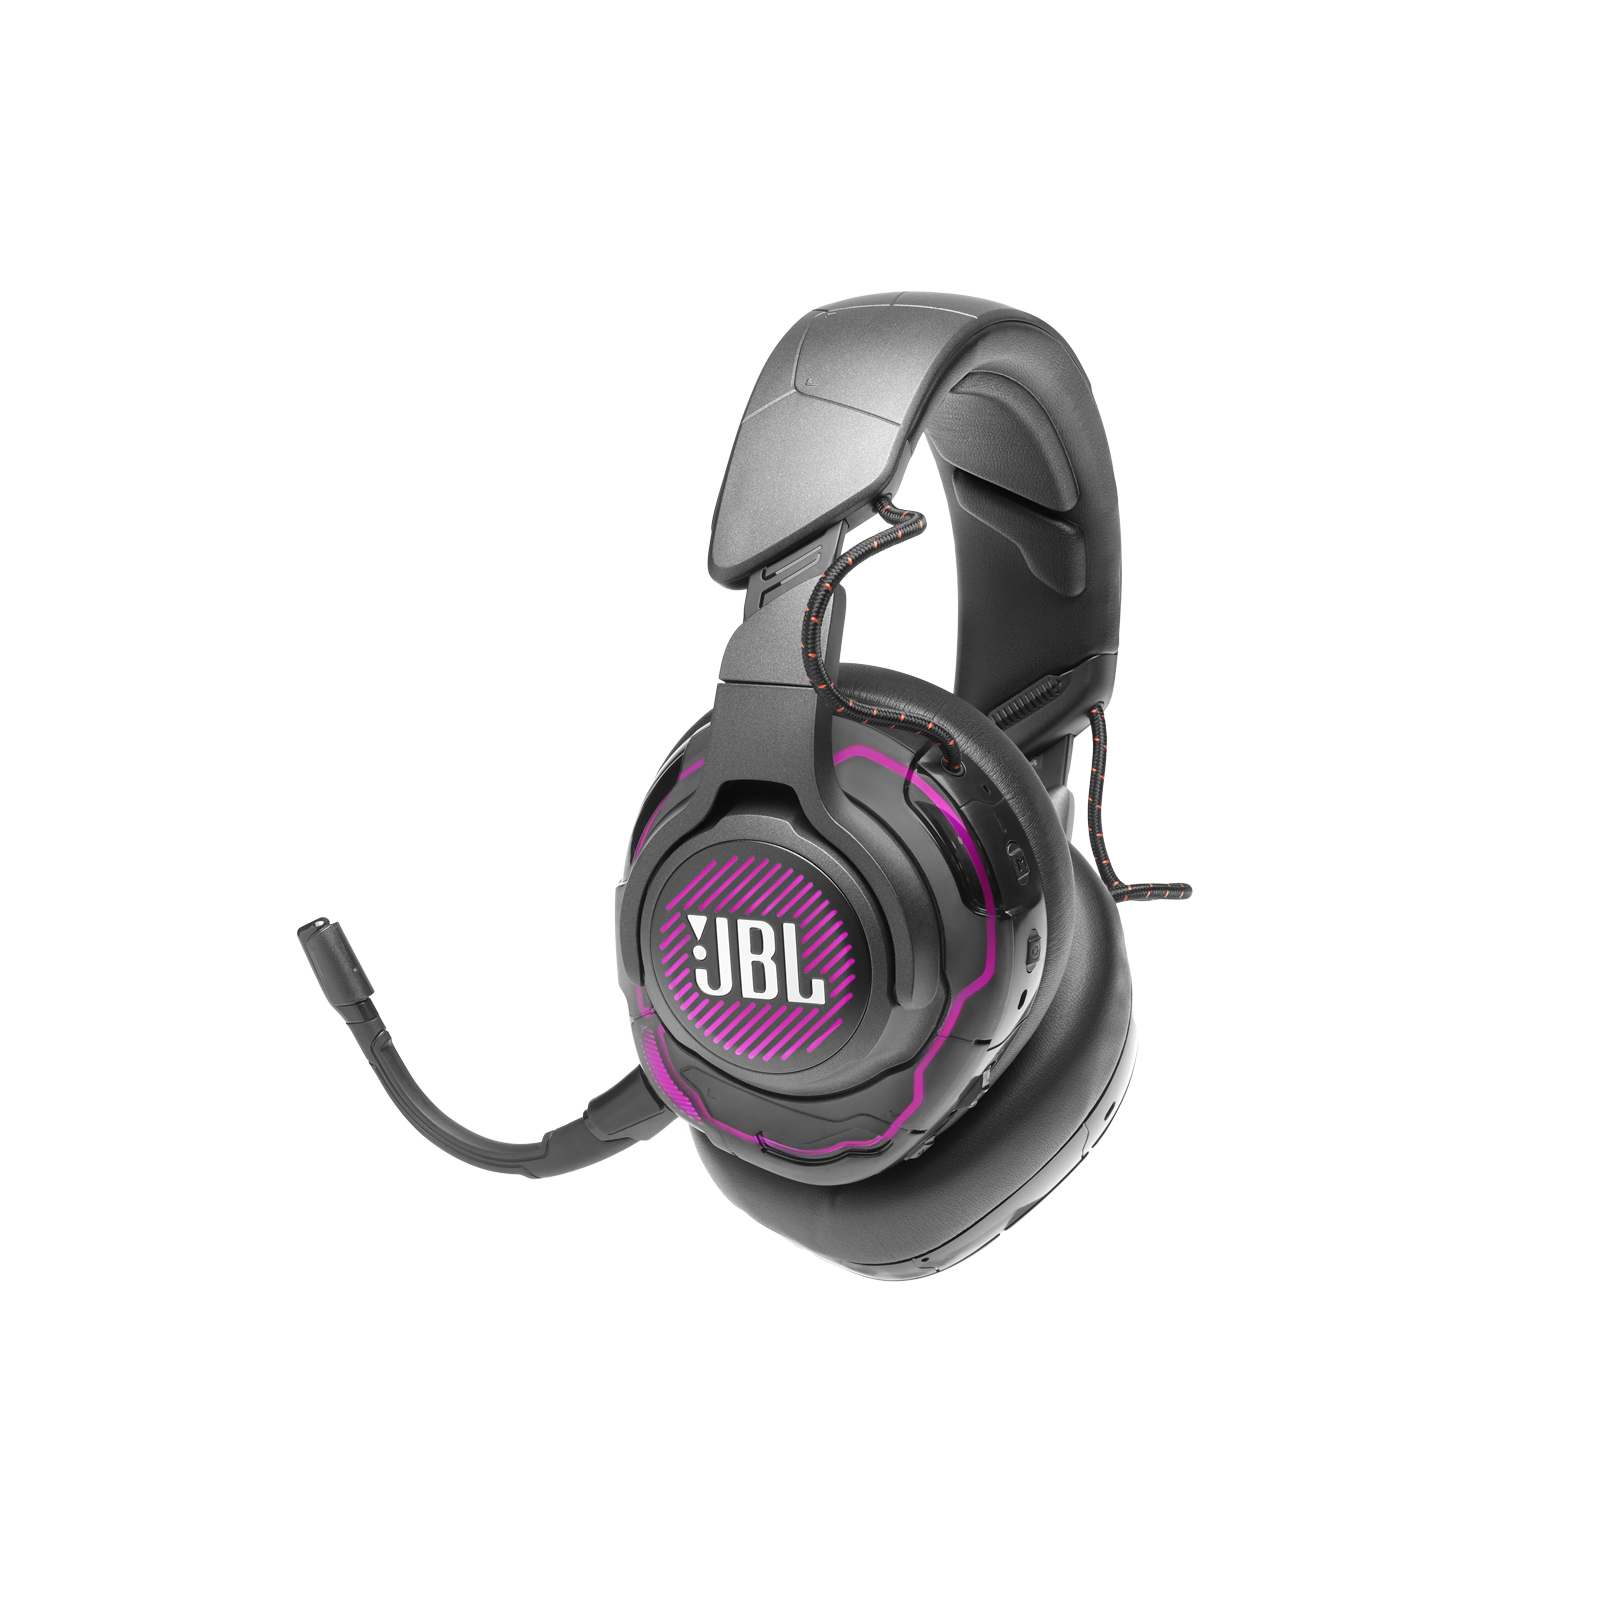 JBL Quantum ONE - Black - USB wired PC over-ear professional gaming headset with head-tracking enhanced JBL QuantumSPHERE 360 - Detailshot 3